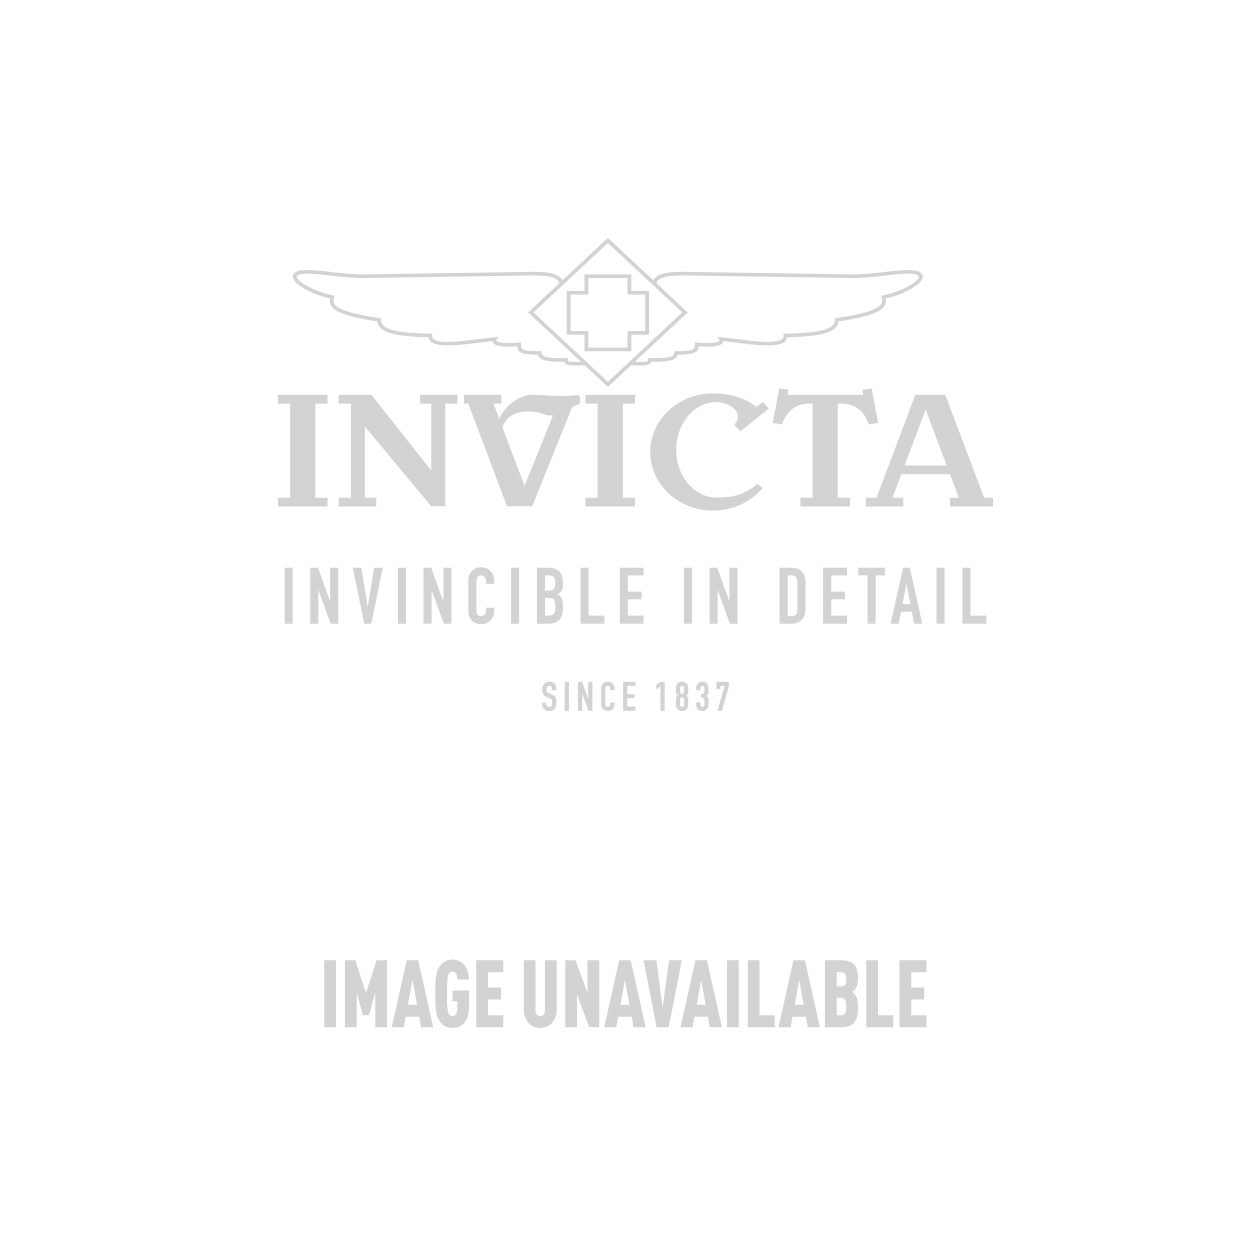 Invicta Specialty Swiss Movement Quartz Watch - Stainless Steel case Stainless Steel band - Model 2875